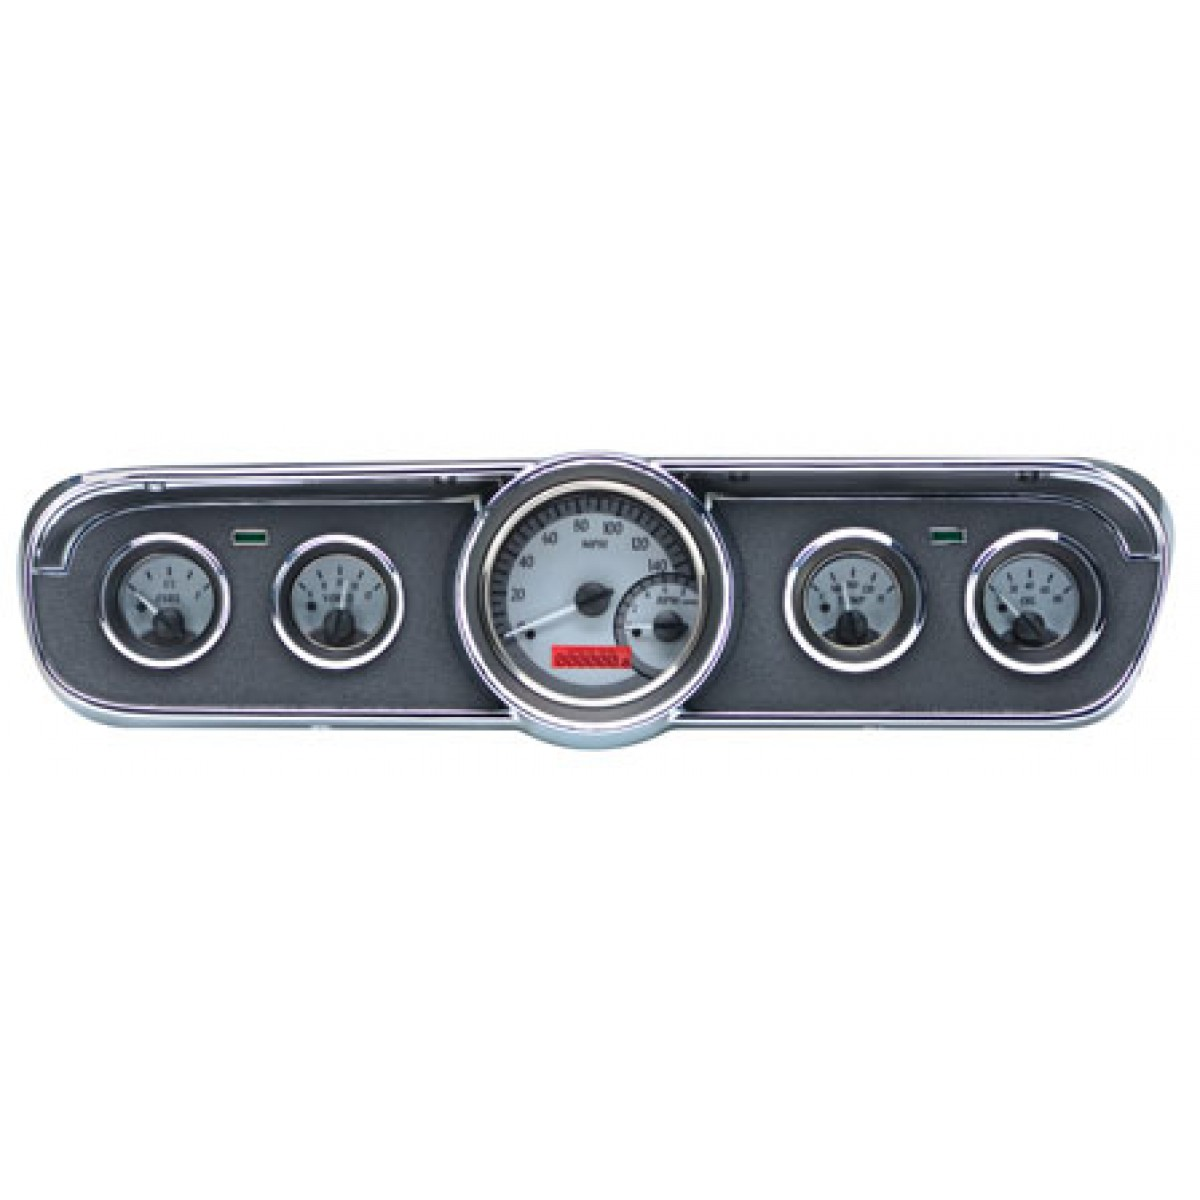 hight resolution of more views 1965 1966 mustang gauge cluster